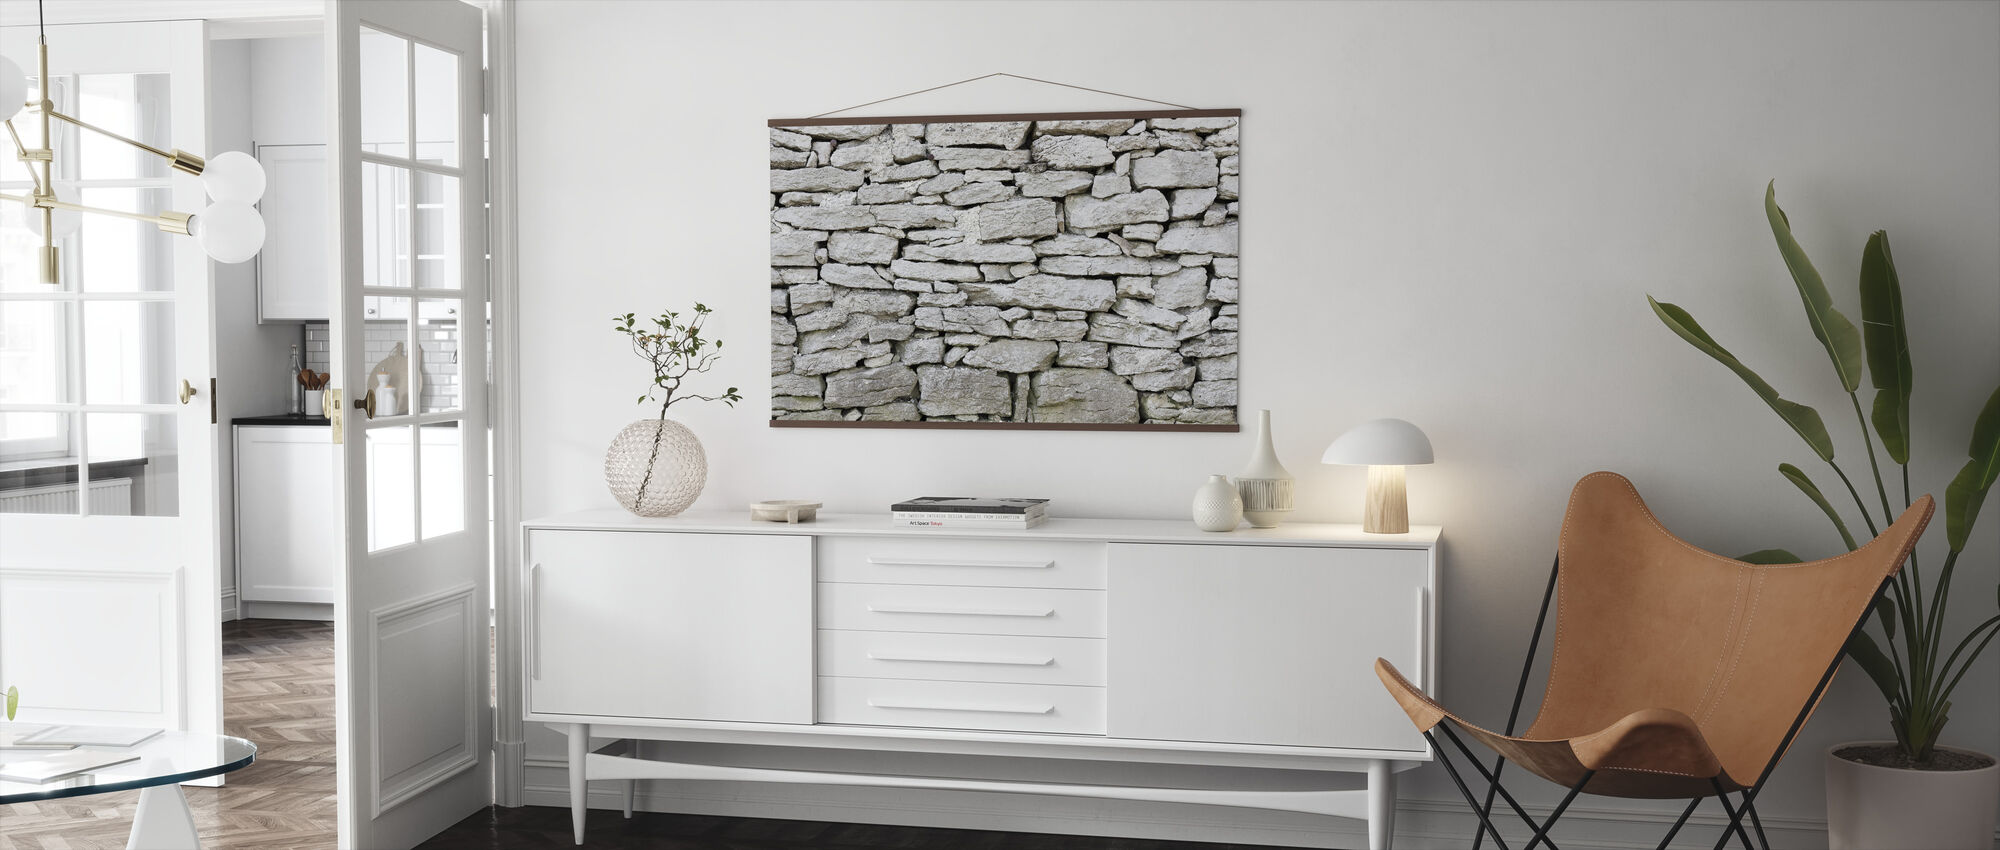 Gotland Stone Wall - Poster - Living Room